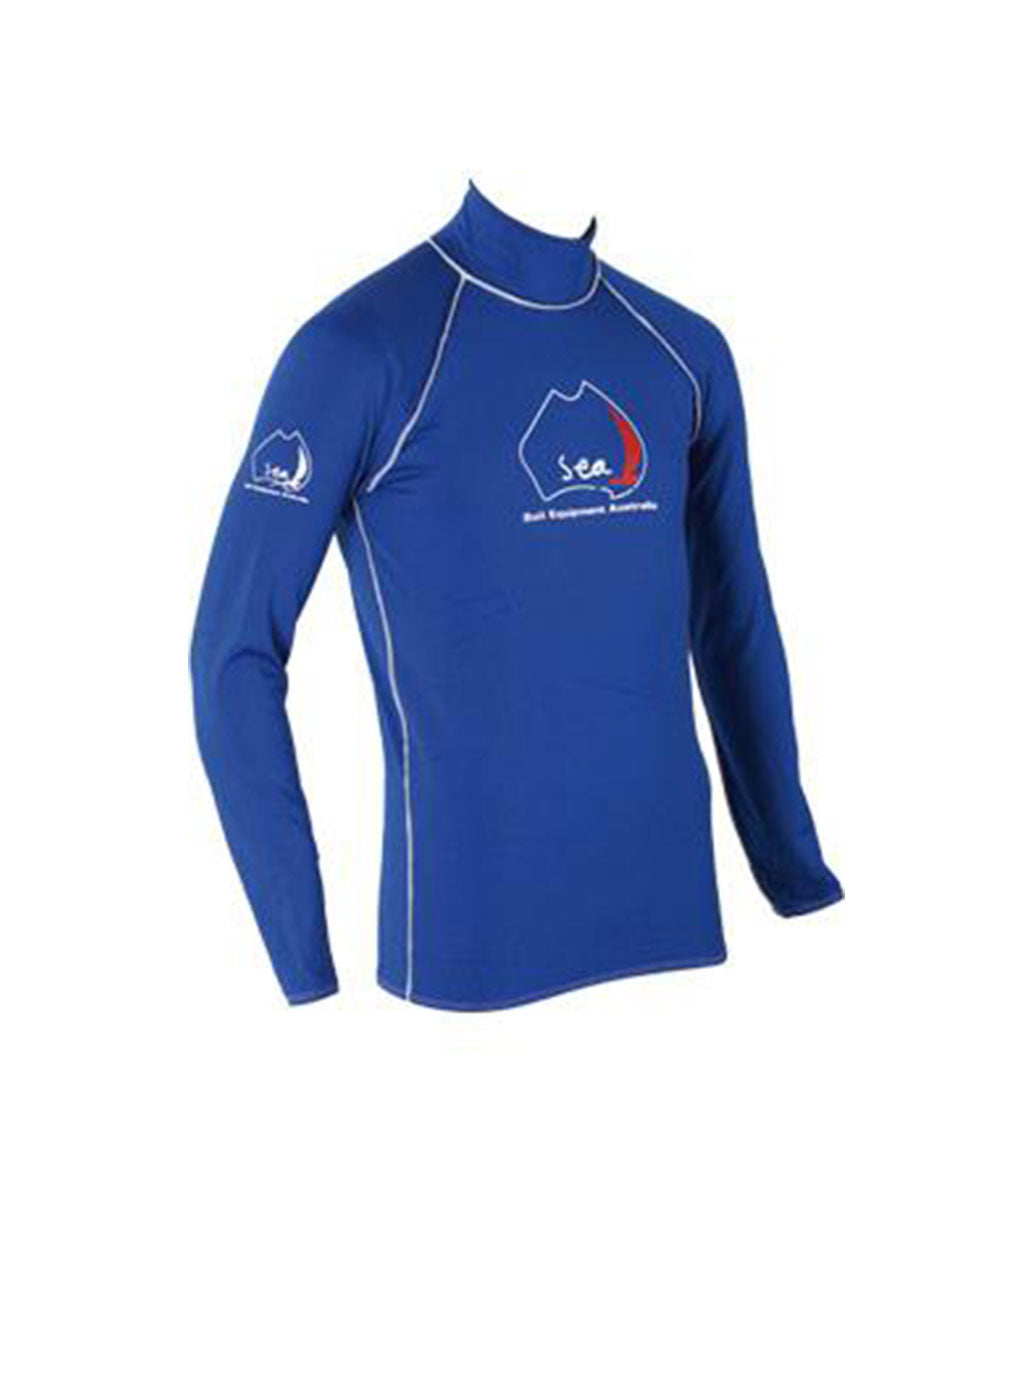 Sea Gear Long Sleeve Thermo Skins